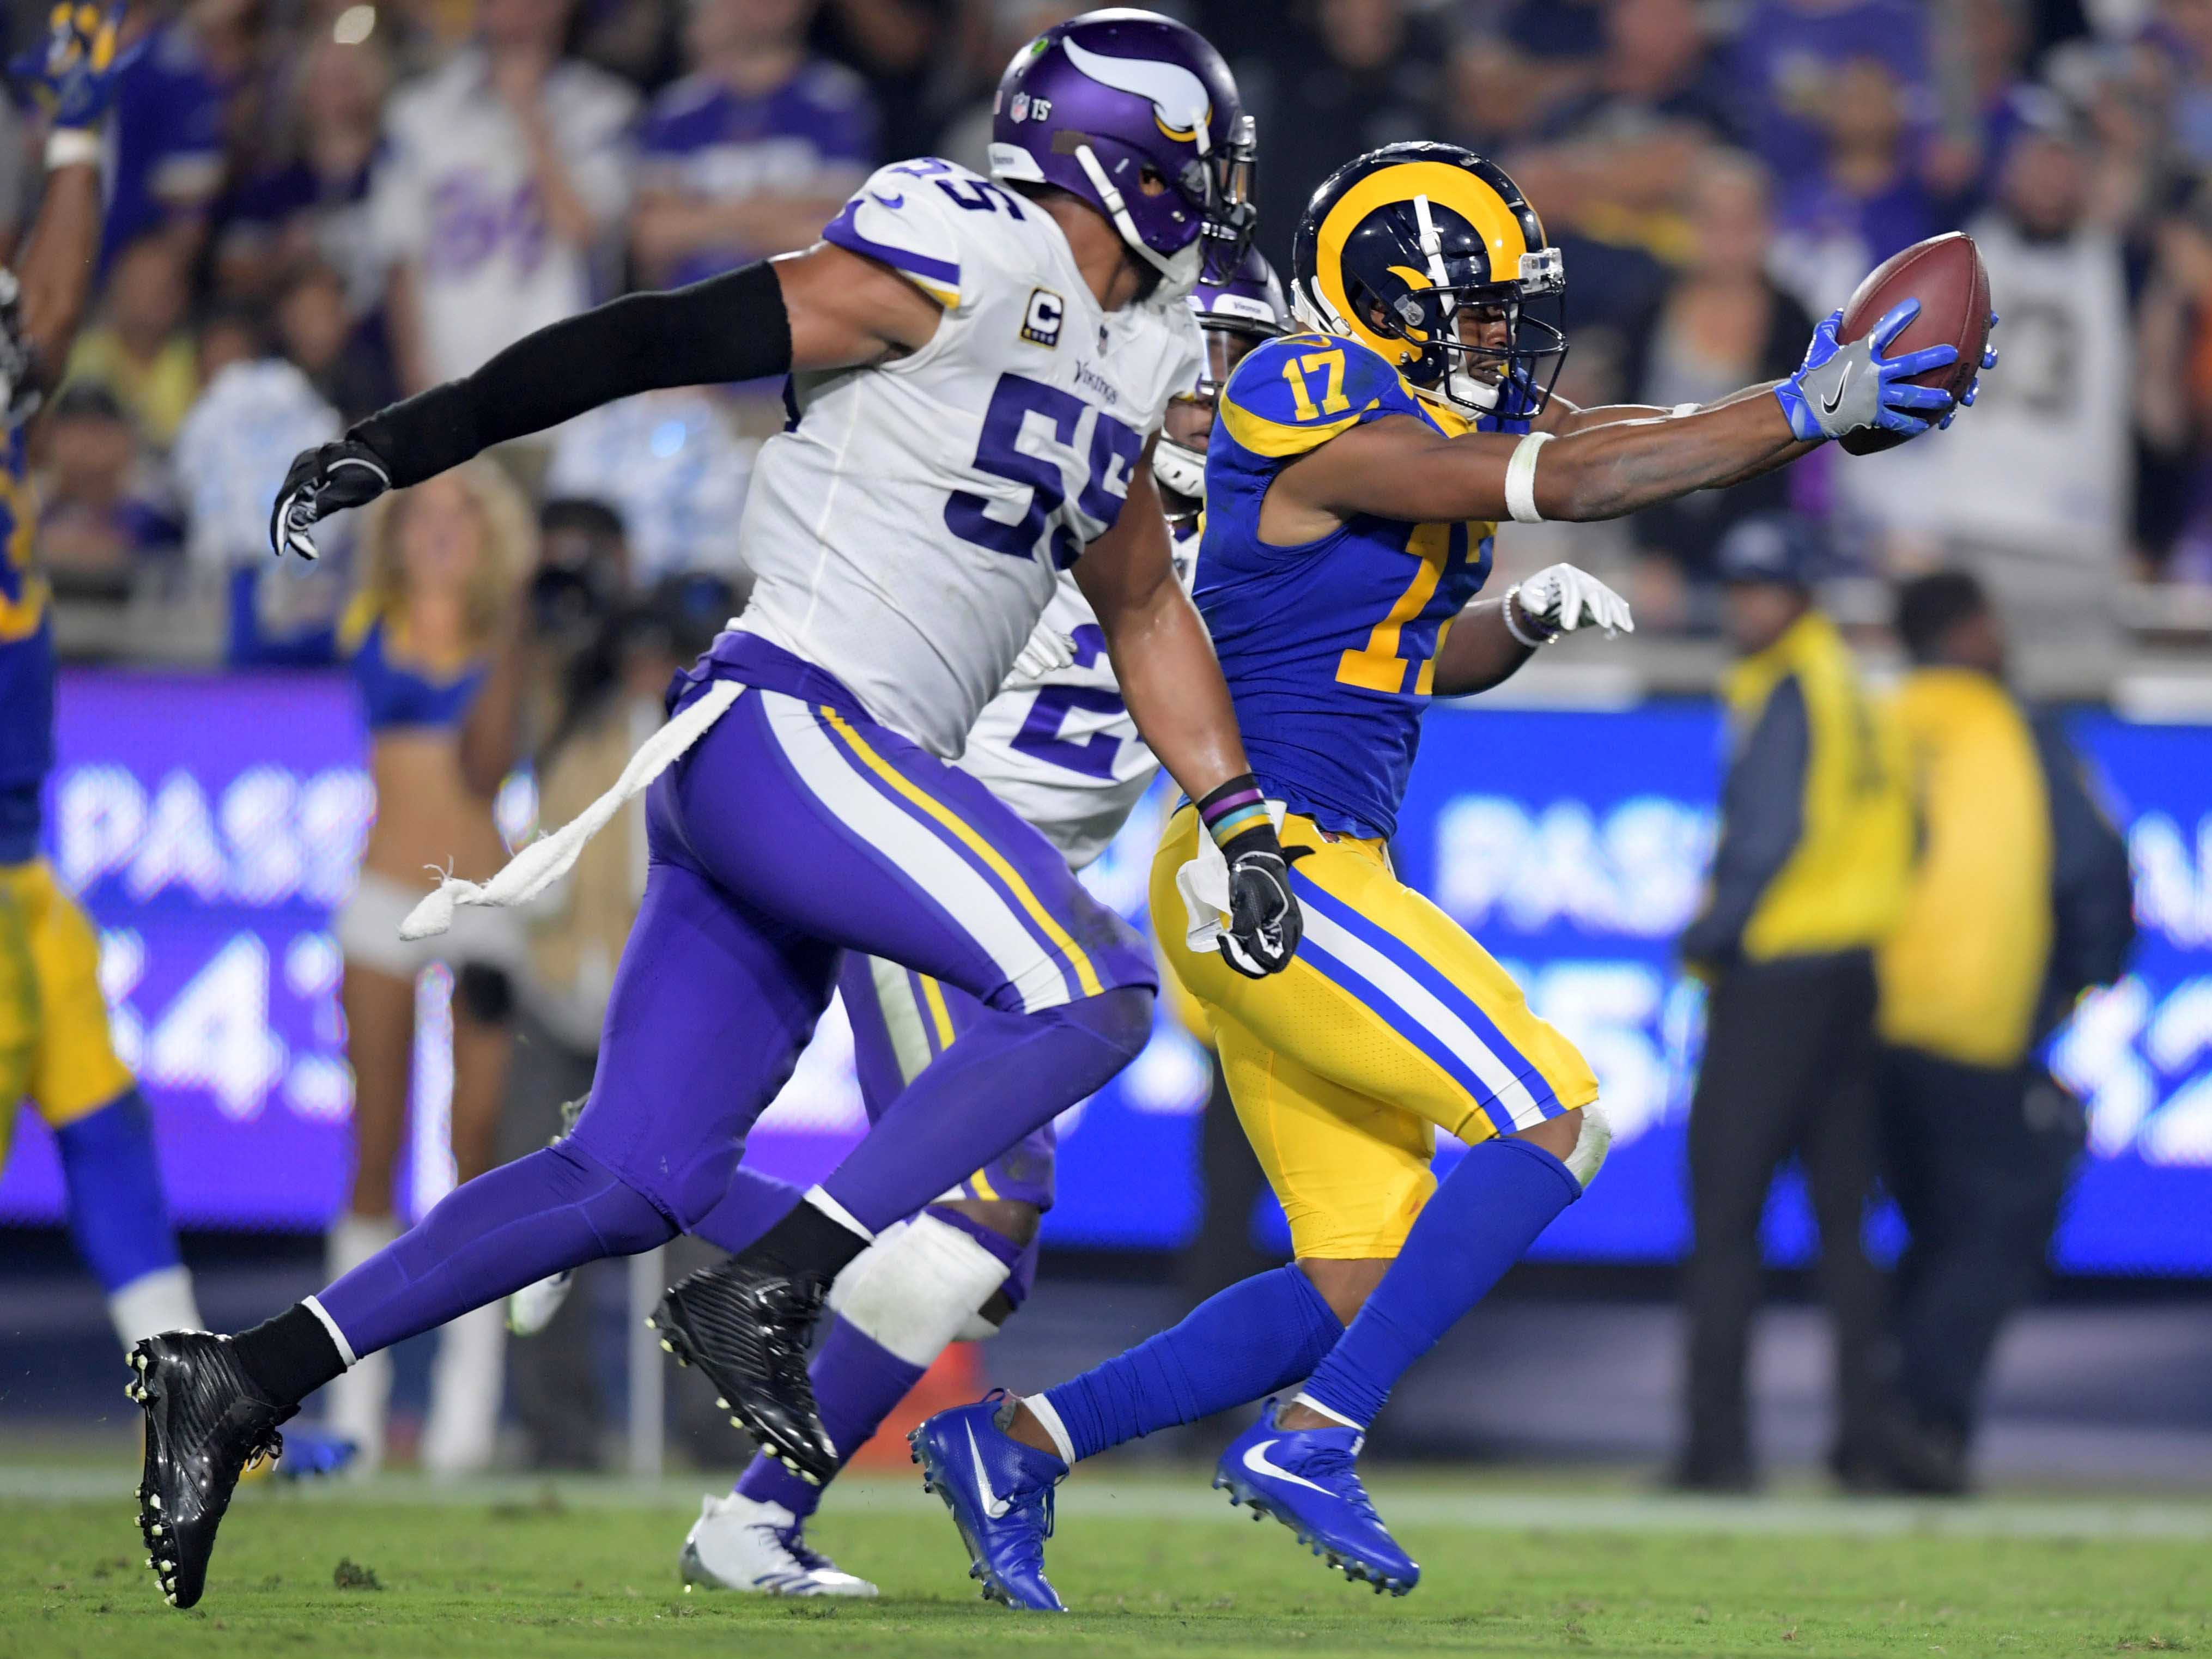 Los Angeles Rams wide receiver Robert Woods is pursued by Minnesota Vikings linebacker Anthony Barr on a 31-yard touchdown reception in the fourth quarter at Los Angeles Memorial Coliseum.